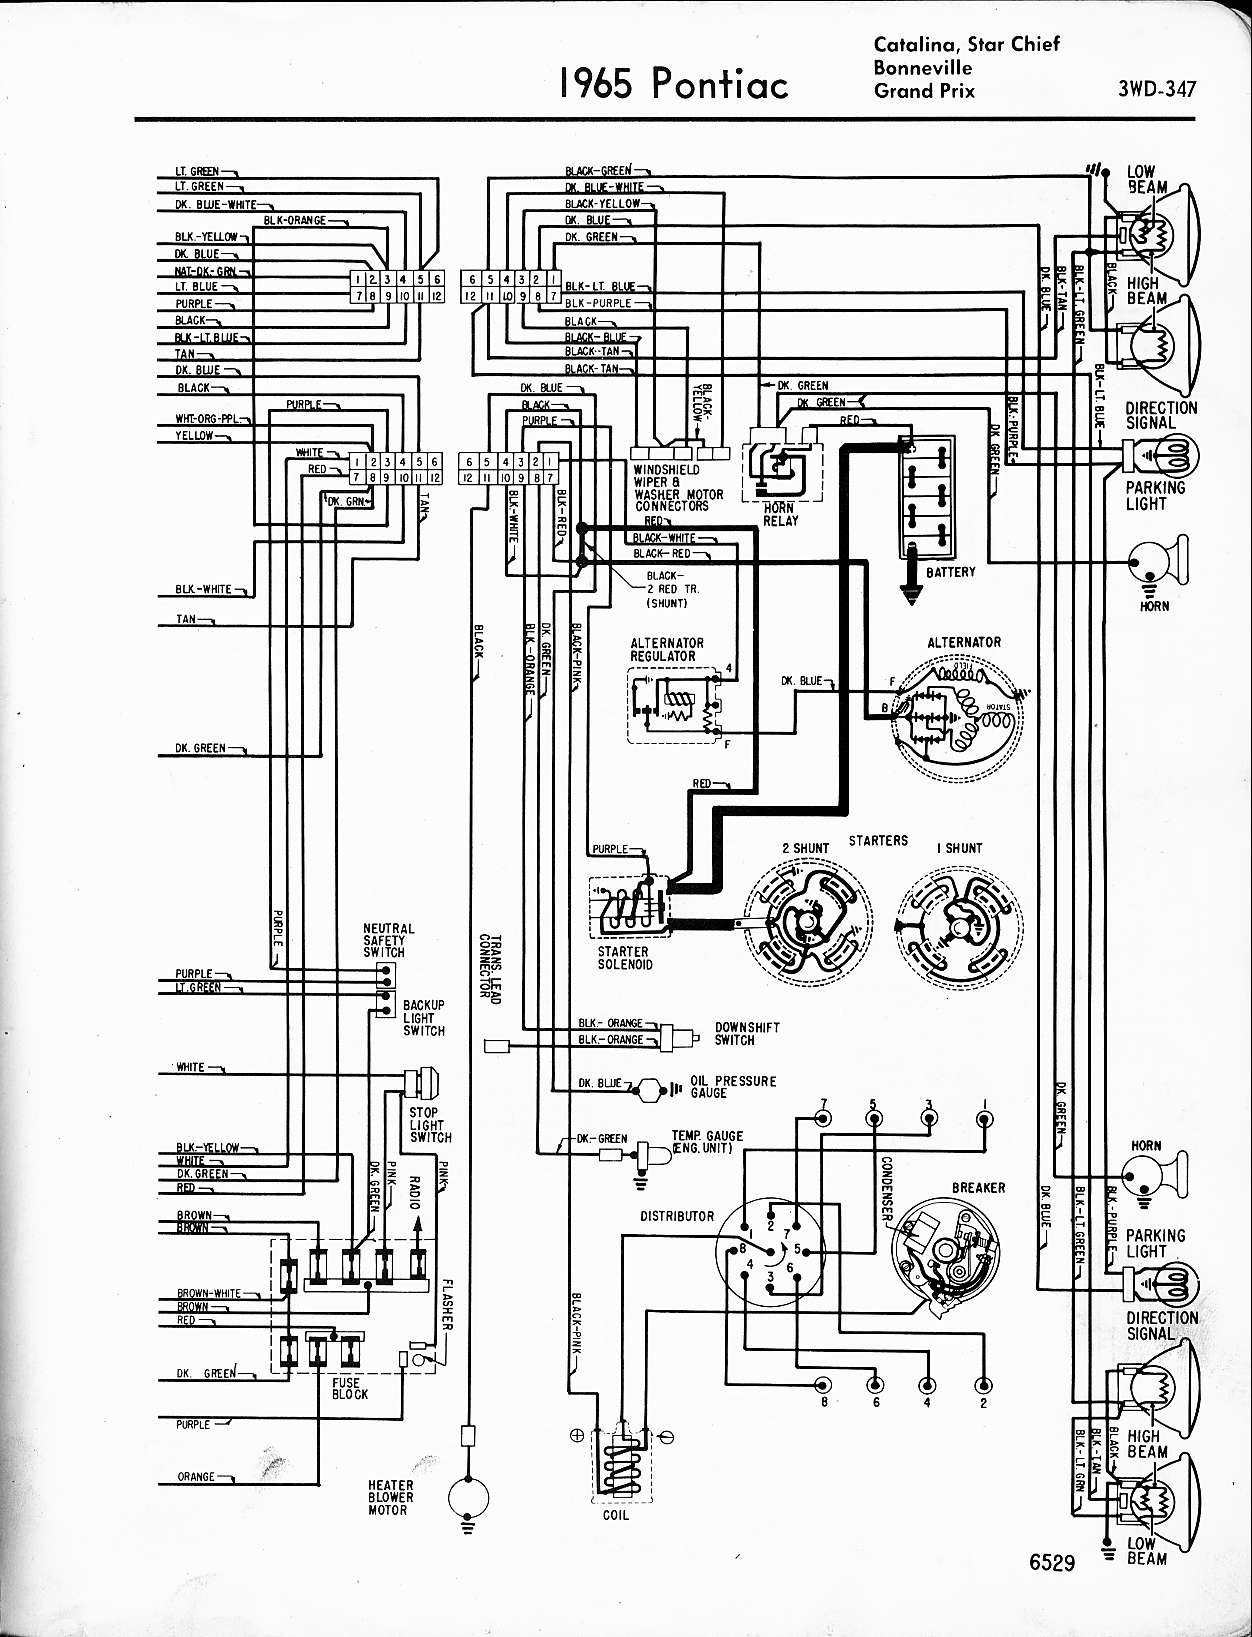 Wallace Racing Wiring Diagrams 1963 Chevy 2 Diagram 1965 Catalina Star Chief Bonneville Grand Prix Left Page